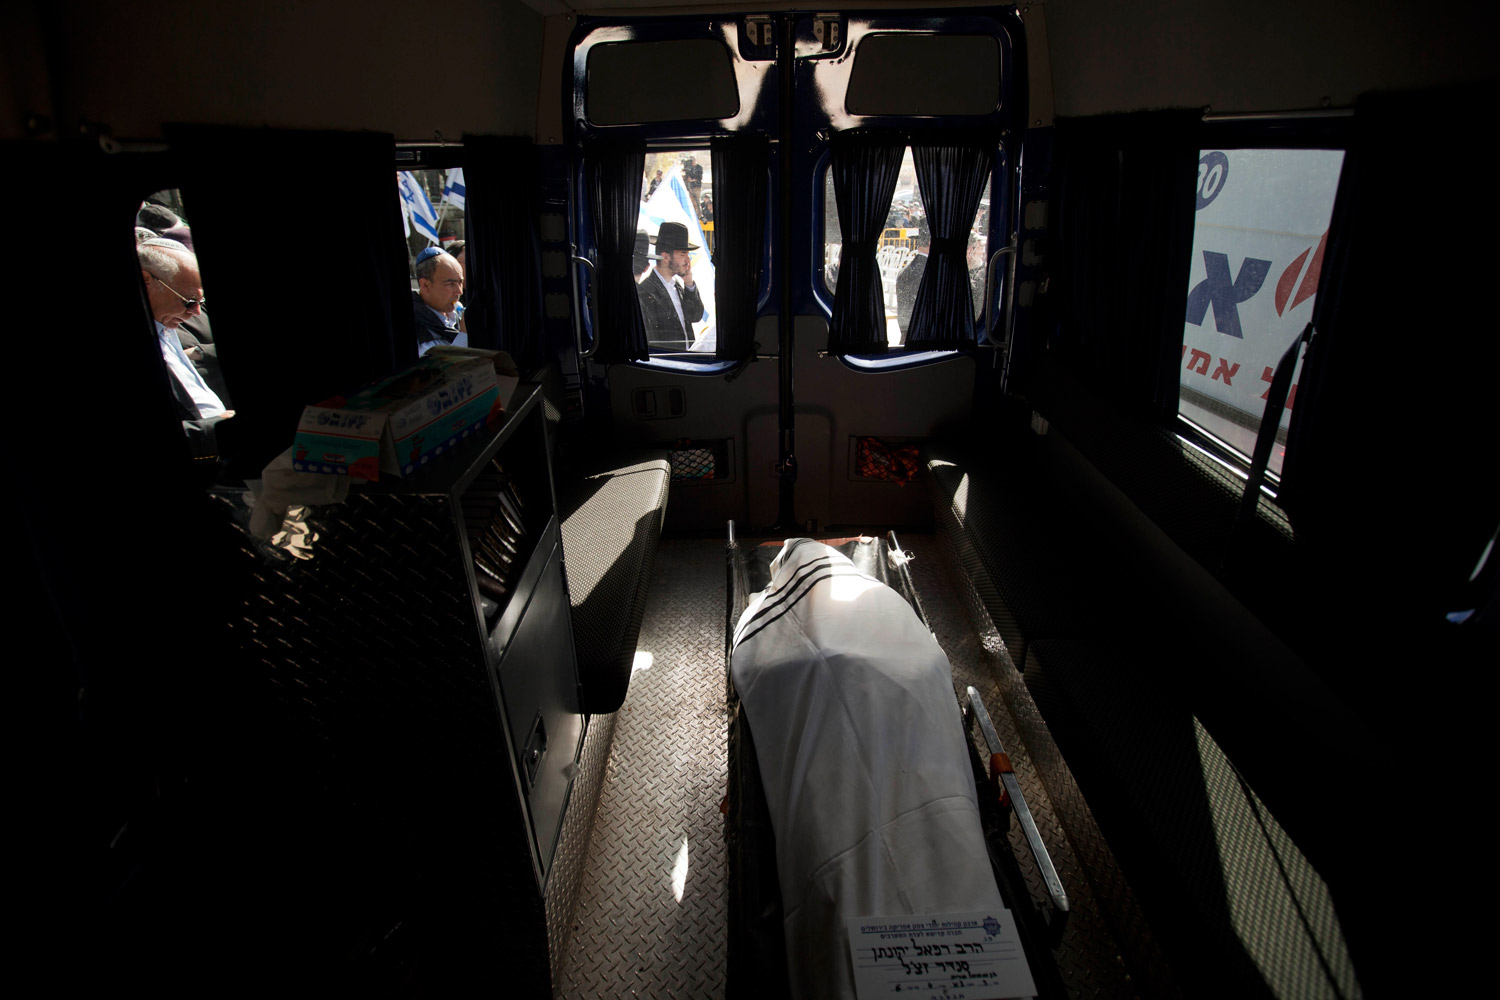 March 21, 2012. The body of Rabbi Jonathan Sandler lies in a hearse at the cemetery during his funeral in Jerusalem. Sandler and three children gunned down at a Jewish school in France were buried Wednesday in a Jerusalem cemetery. The four were killed in the French city of Toulouse when a man on a motorcycle opened fire with two handguns outside the school.